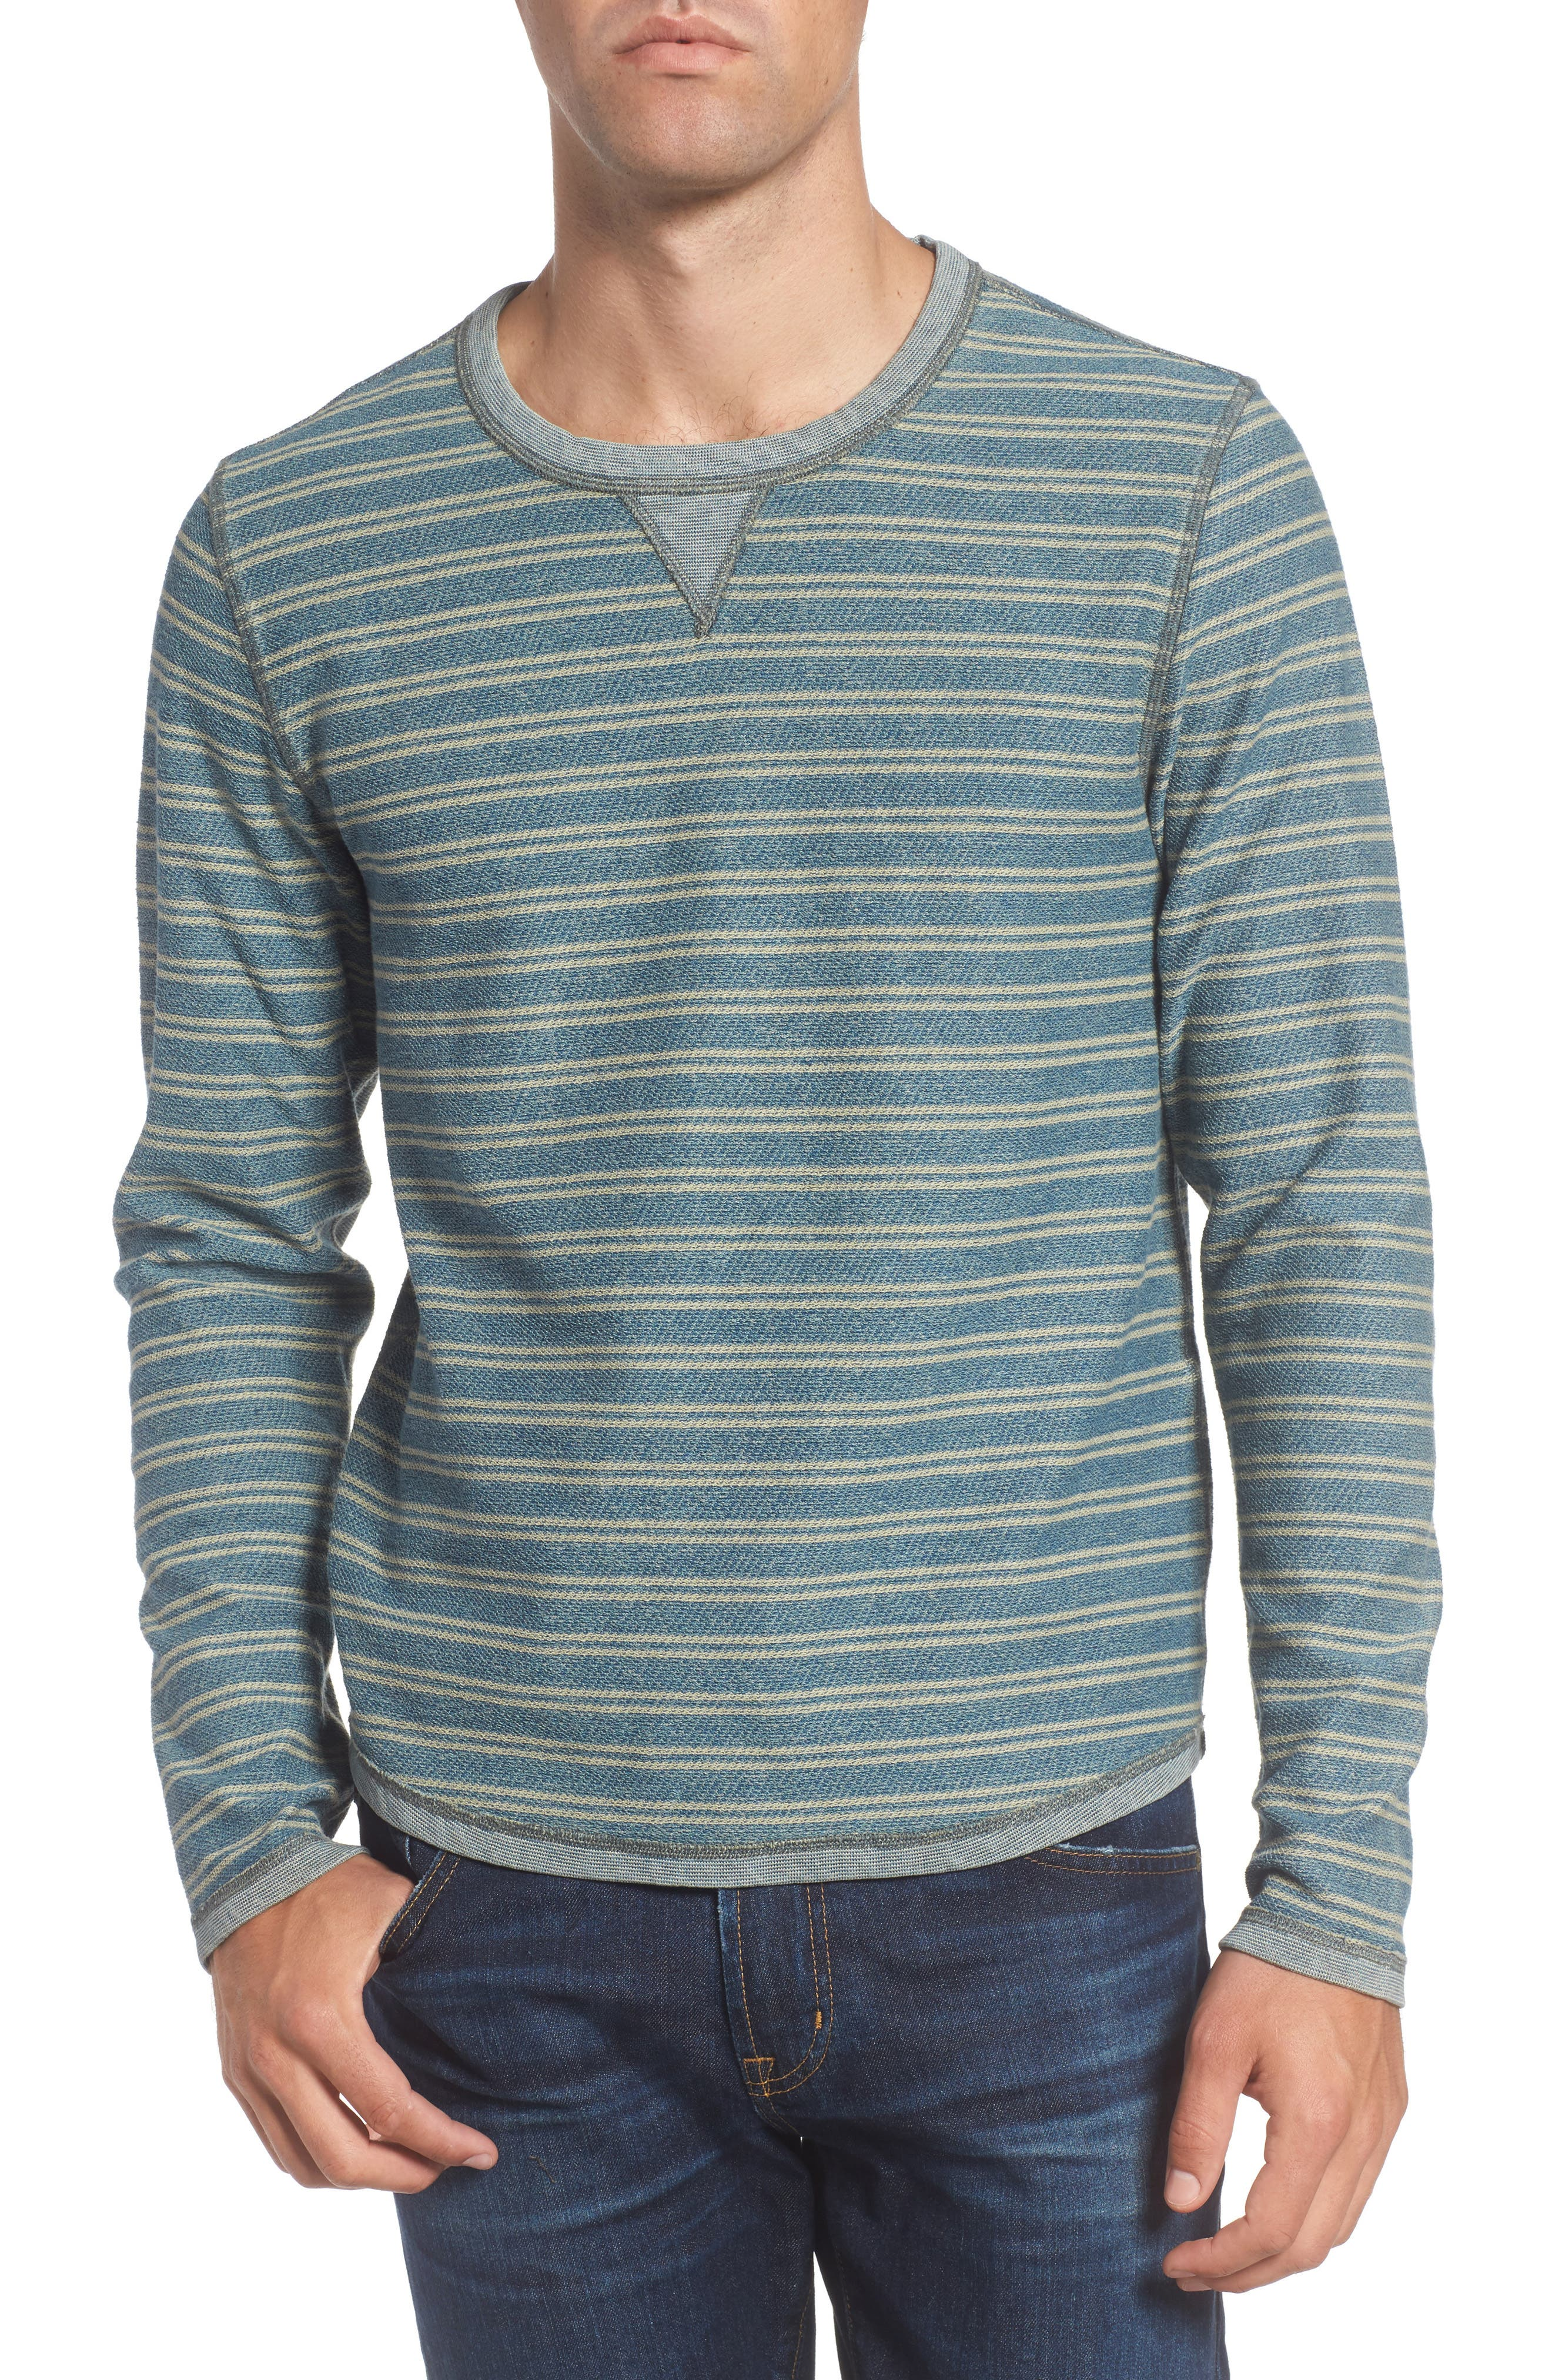 Strickland Reversible Crewneck Sweatshirt,                             Main thumbnail 1, color,                             424